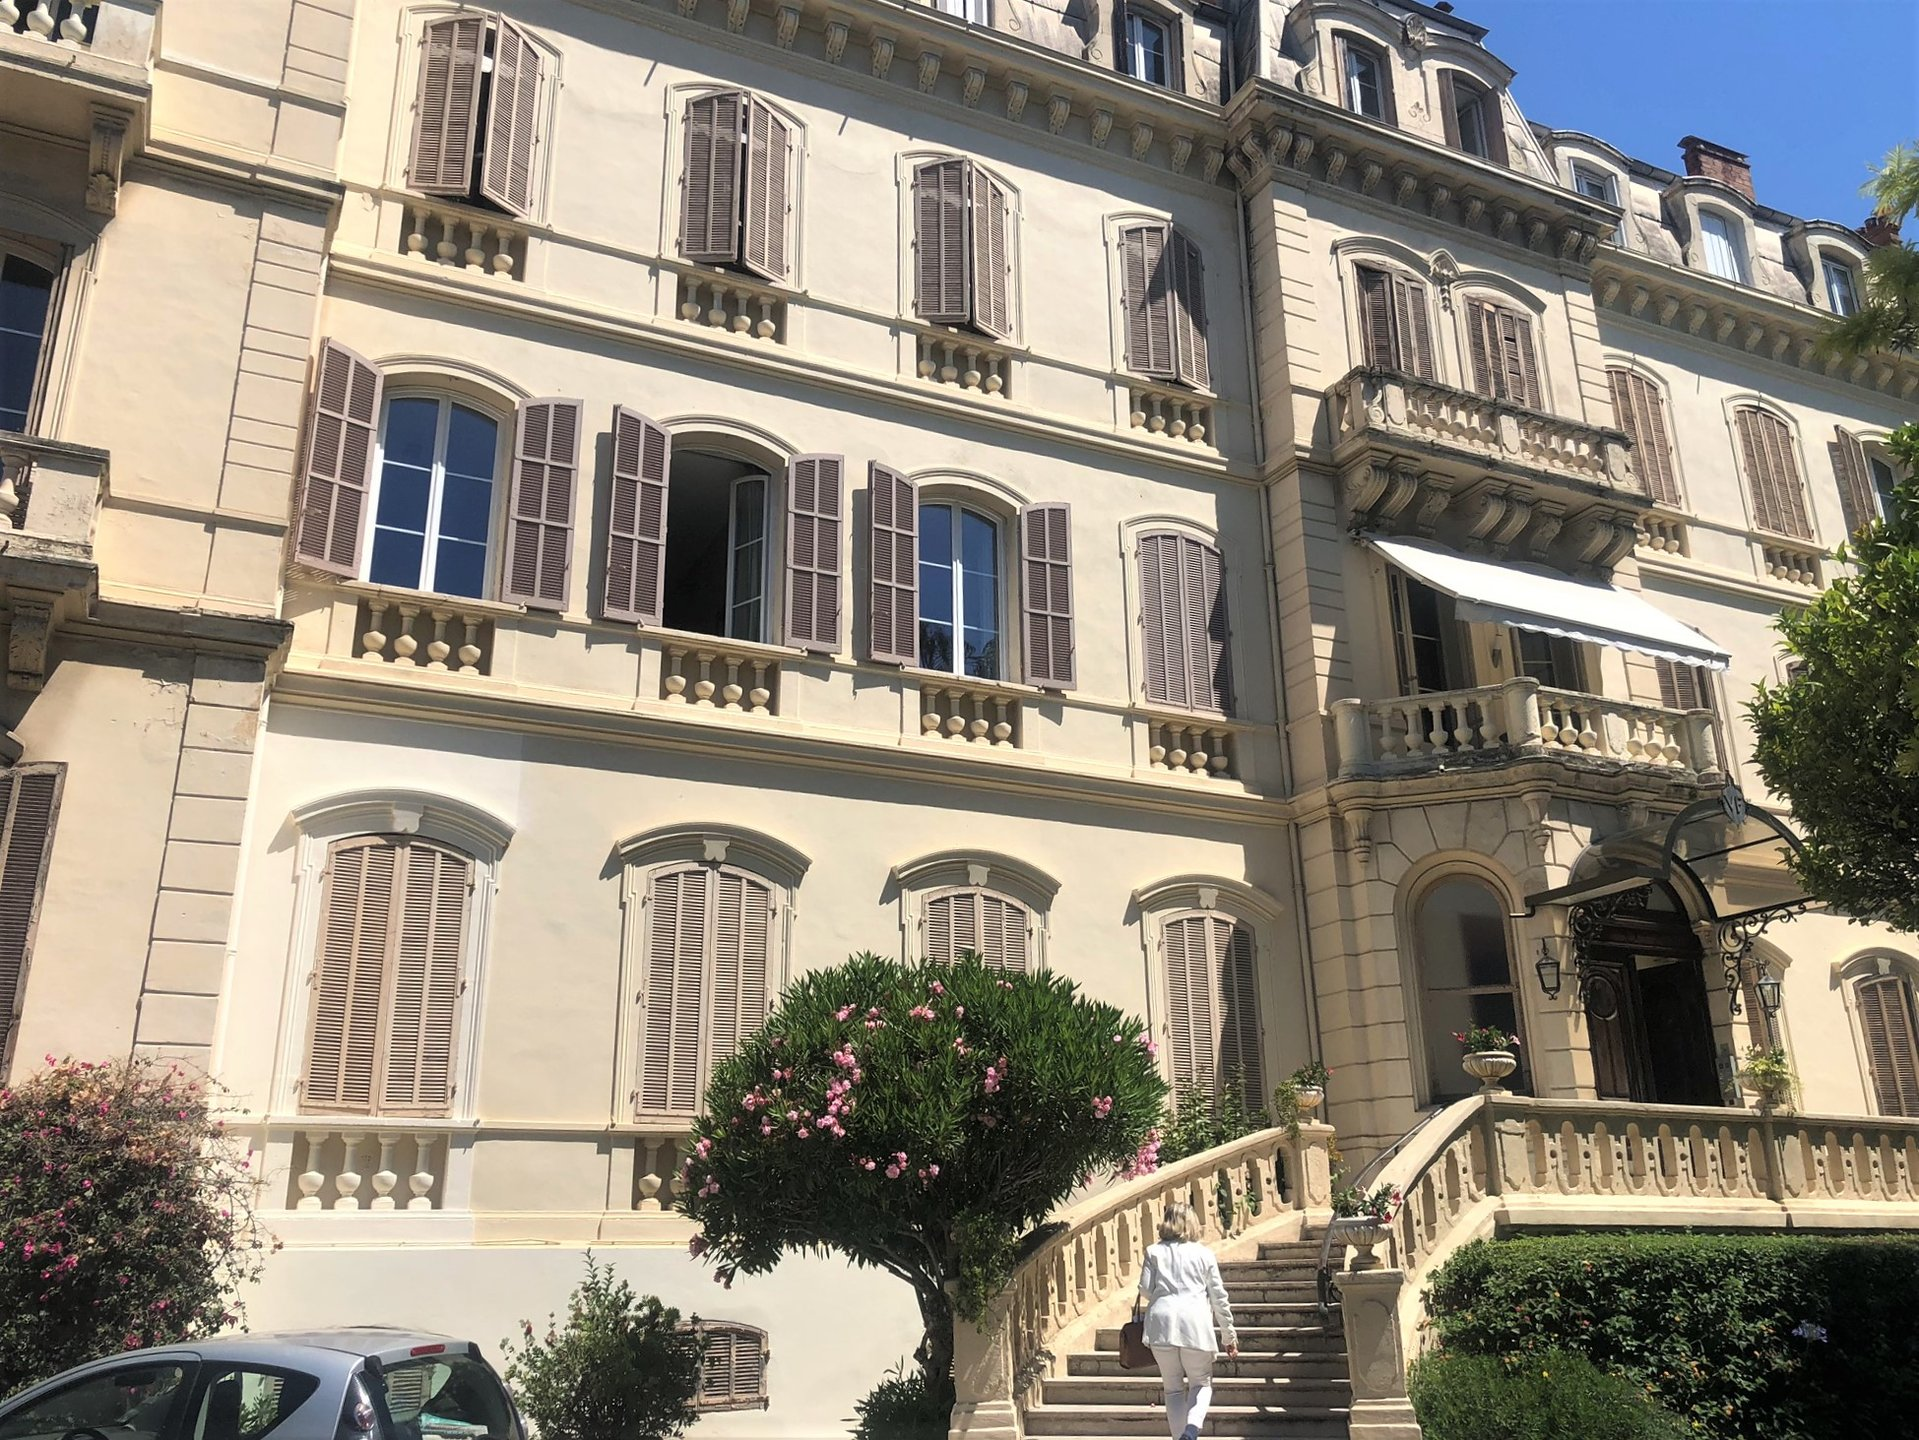 FOR SALE CANNES APARTMENT 100M RUE D'ANTIBES BOURGEOIS 160M2 4 BEDROOMS